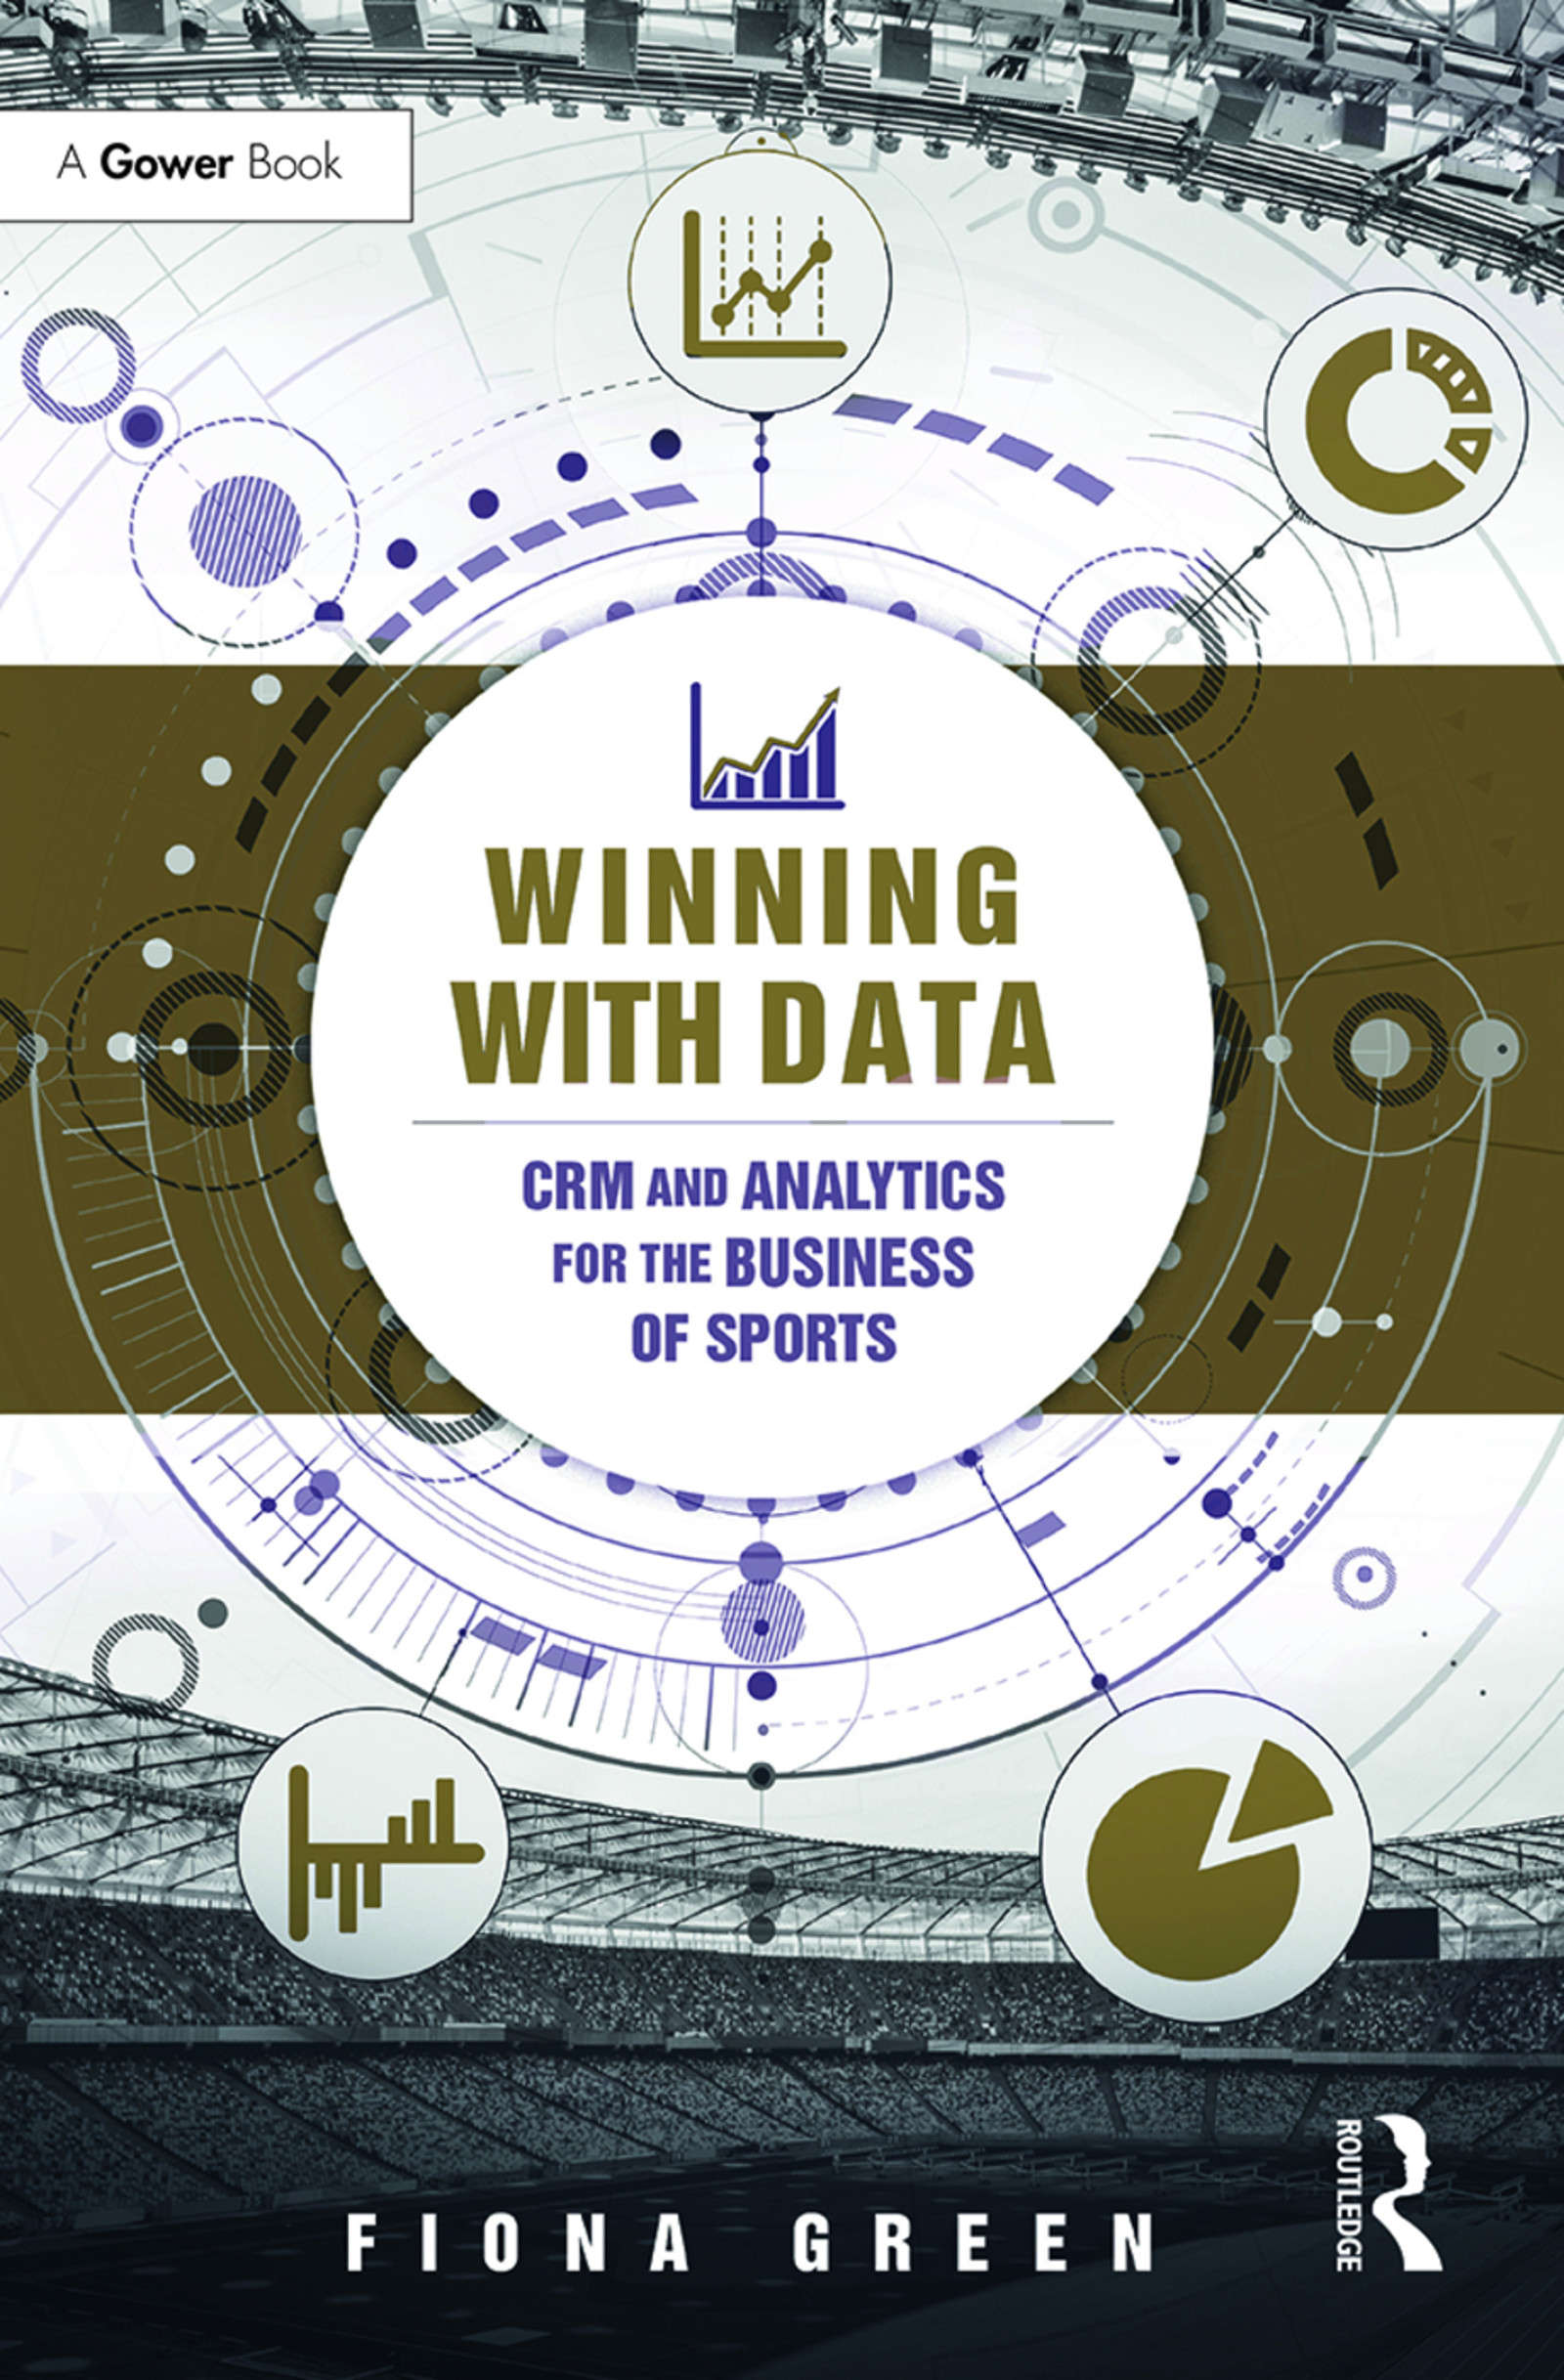 Download Ebook Winning With Data by Fiona Green Pdf